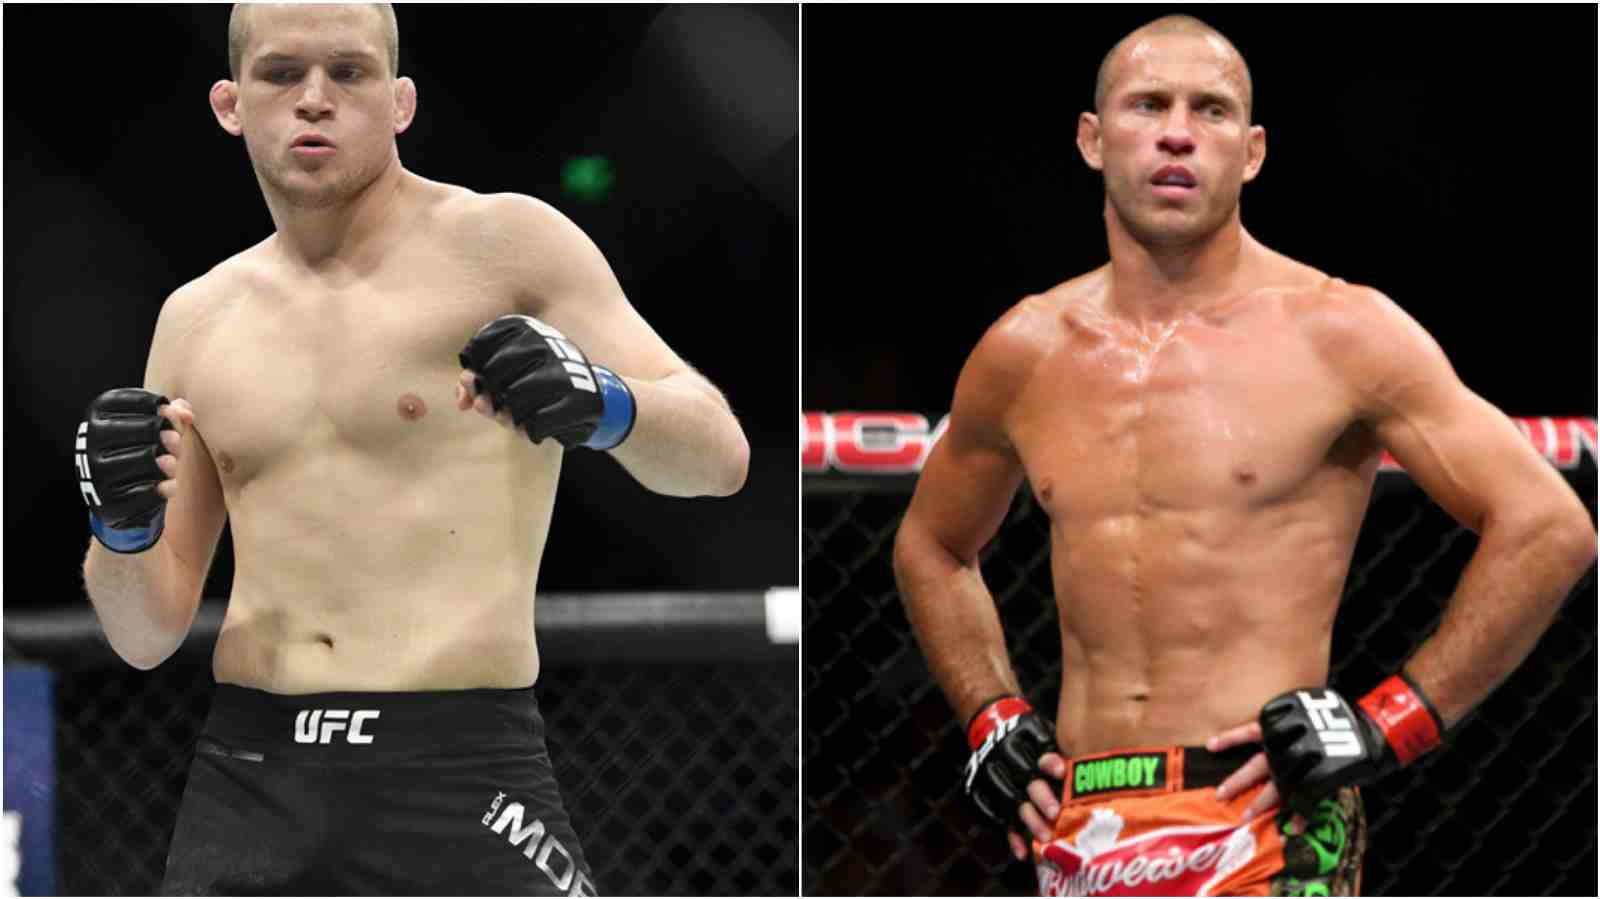 Alex Morono vs Donald Cerrone